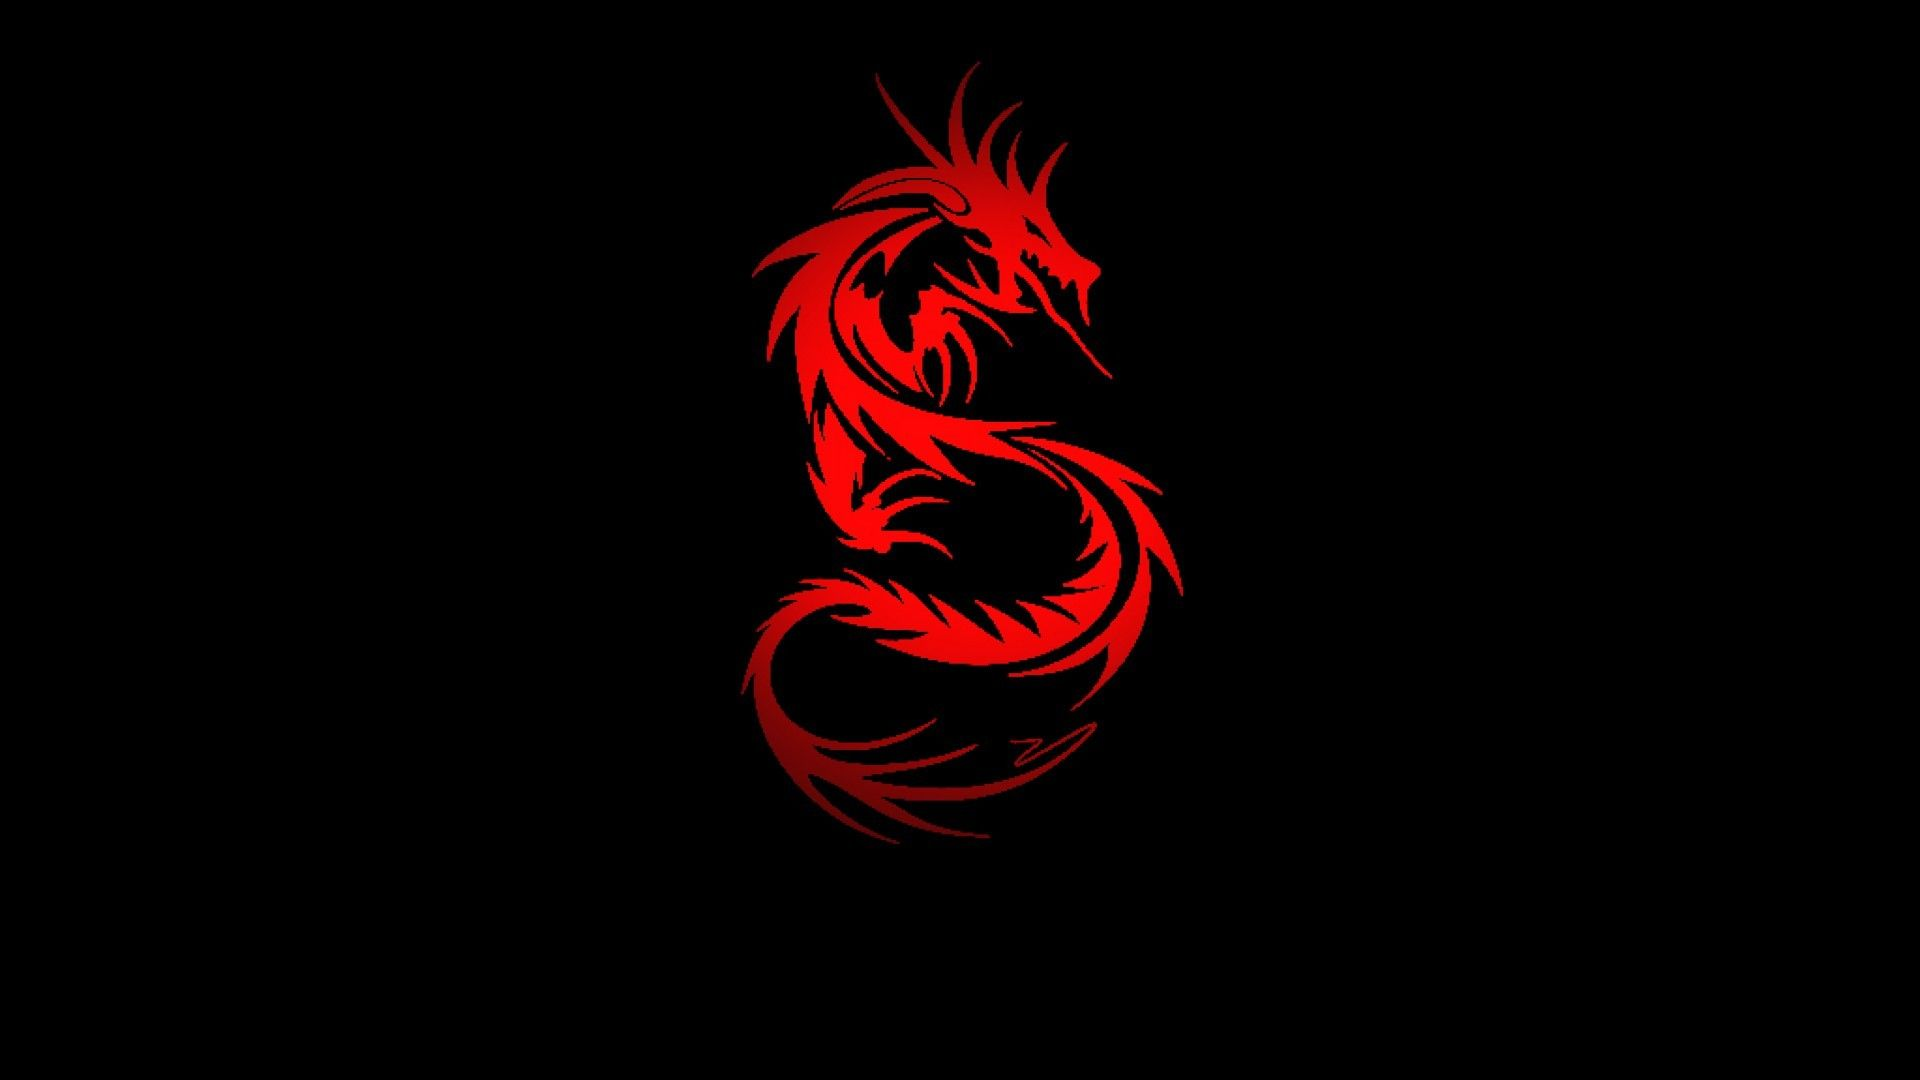 1920x1080 Red Dragon Wallpaper HD (65+ images)